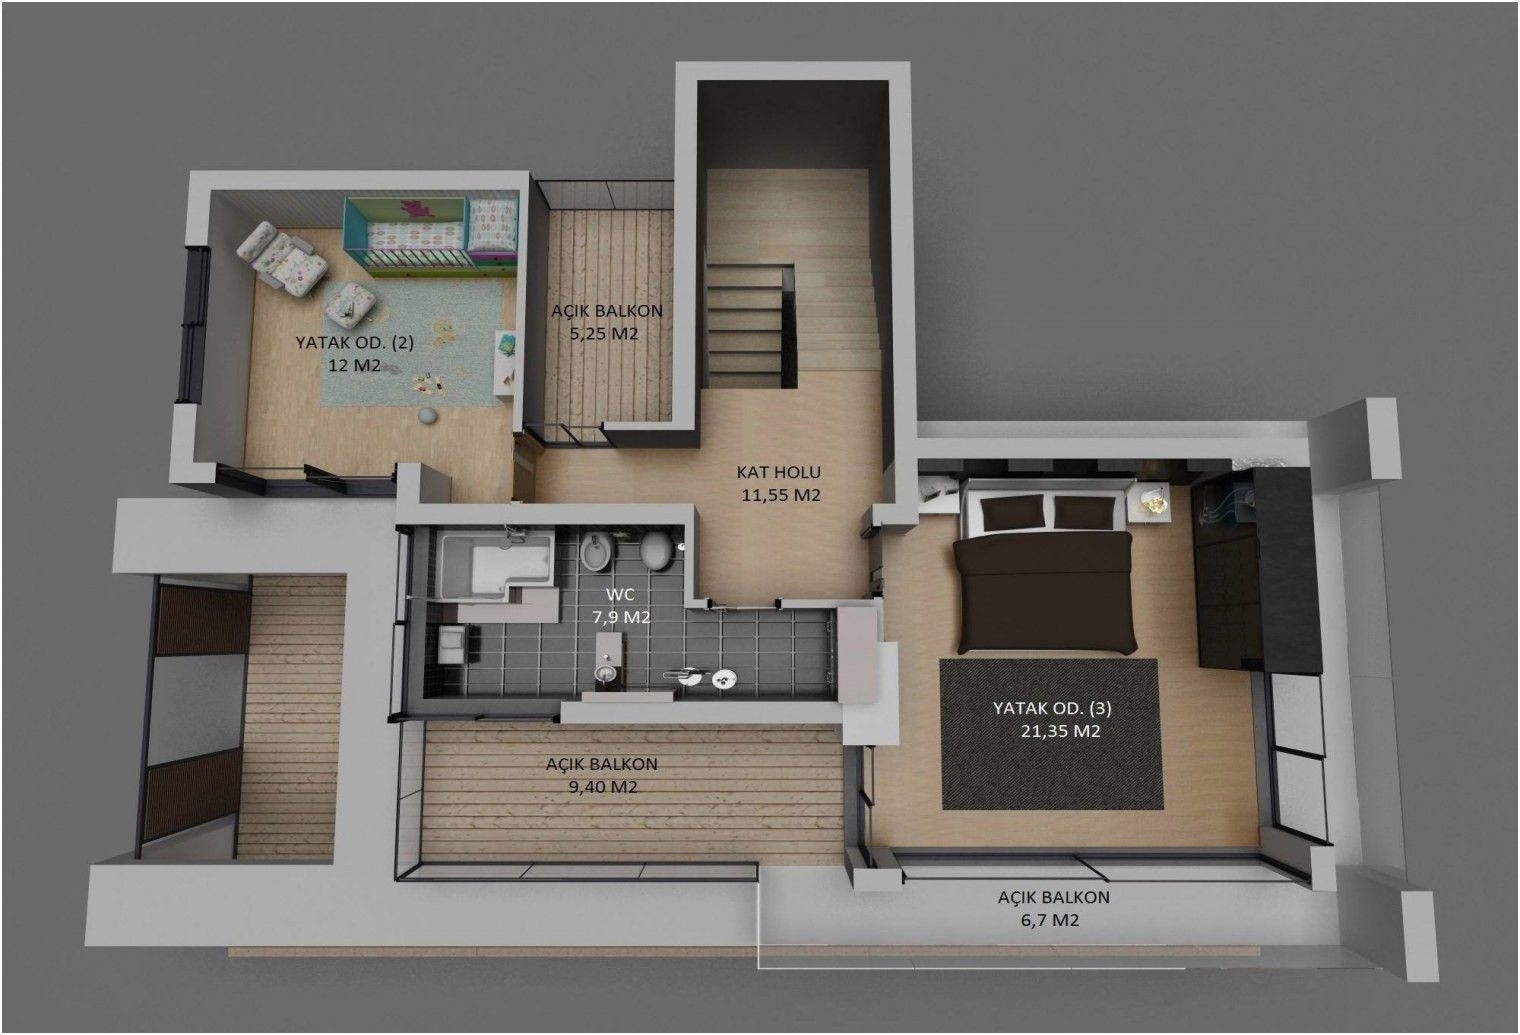 400 Sq Ft House Plans In 2020 Bedroom House Plans Simple Ranch House Plans Mansion Floor Plan